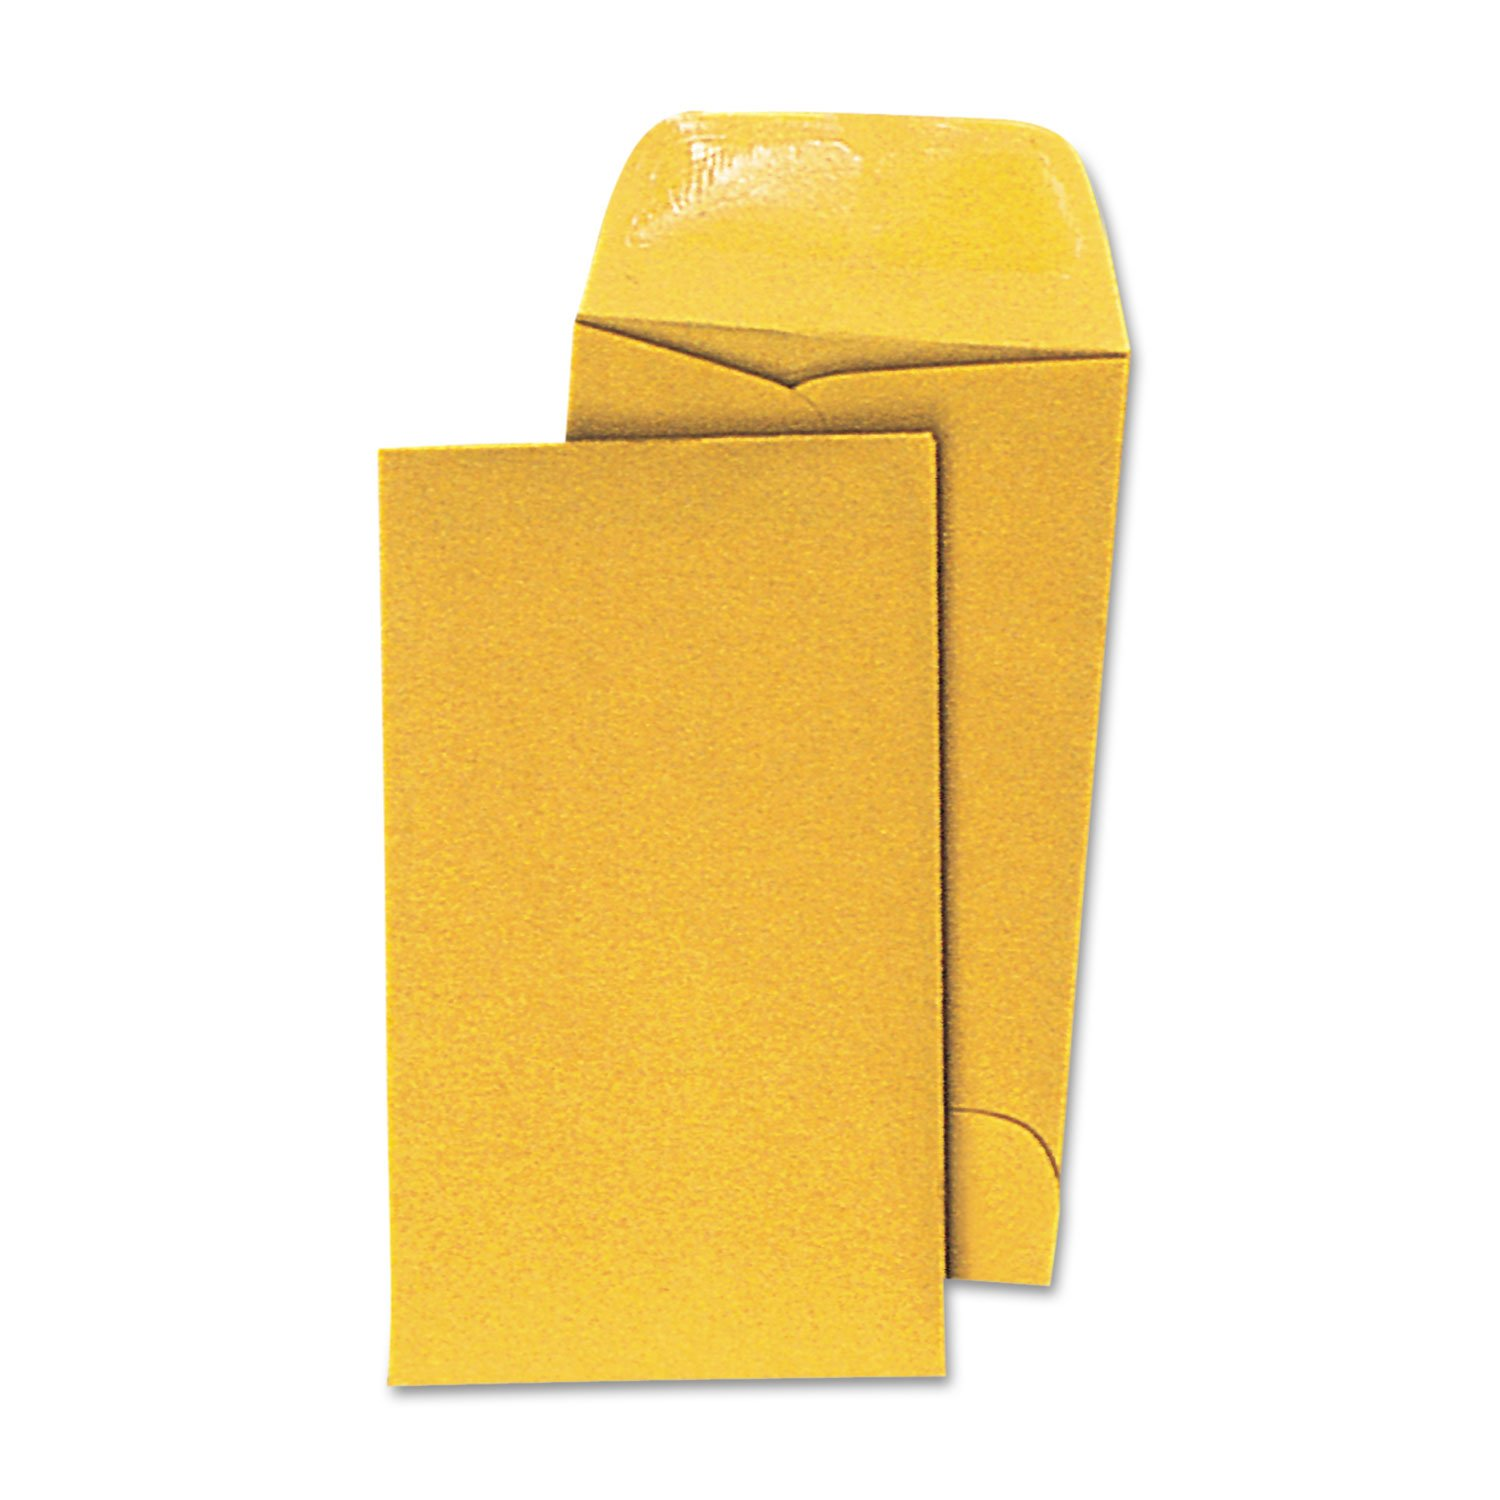 Universal Office Products Kraft Coin Envelope, #7, Light Brown, 500/Box 35303